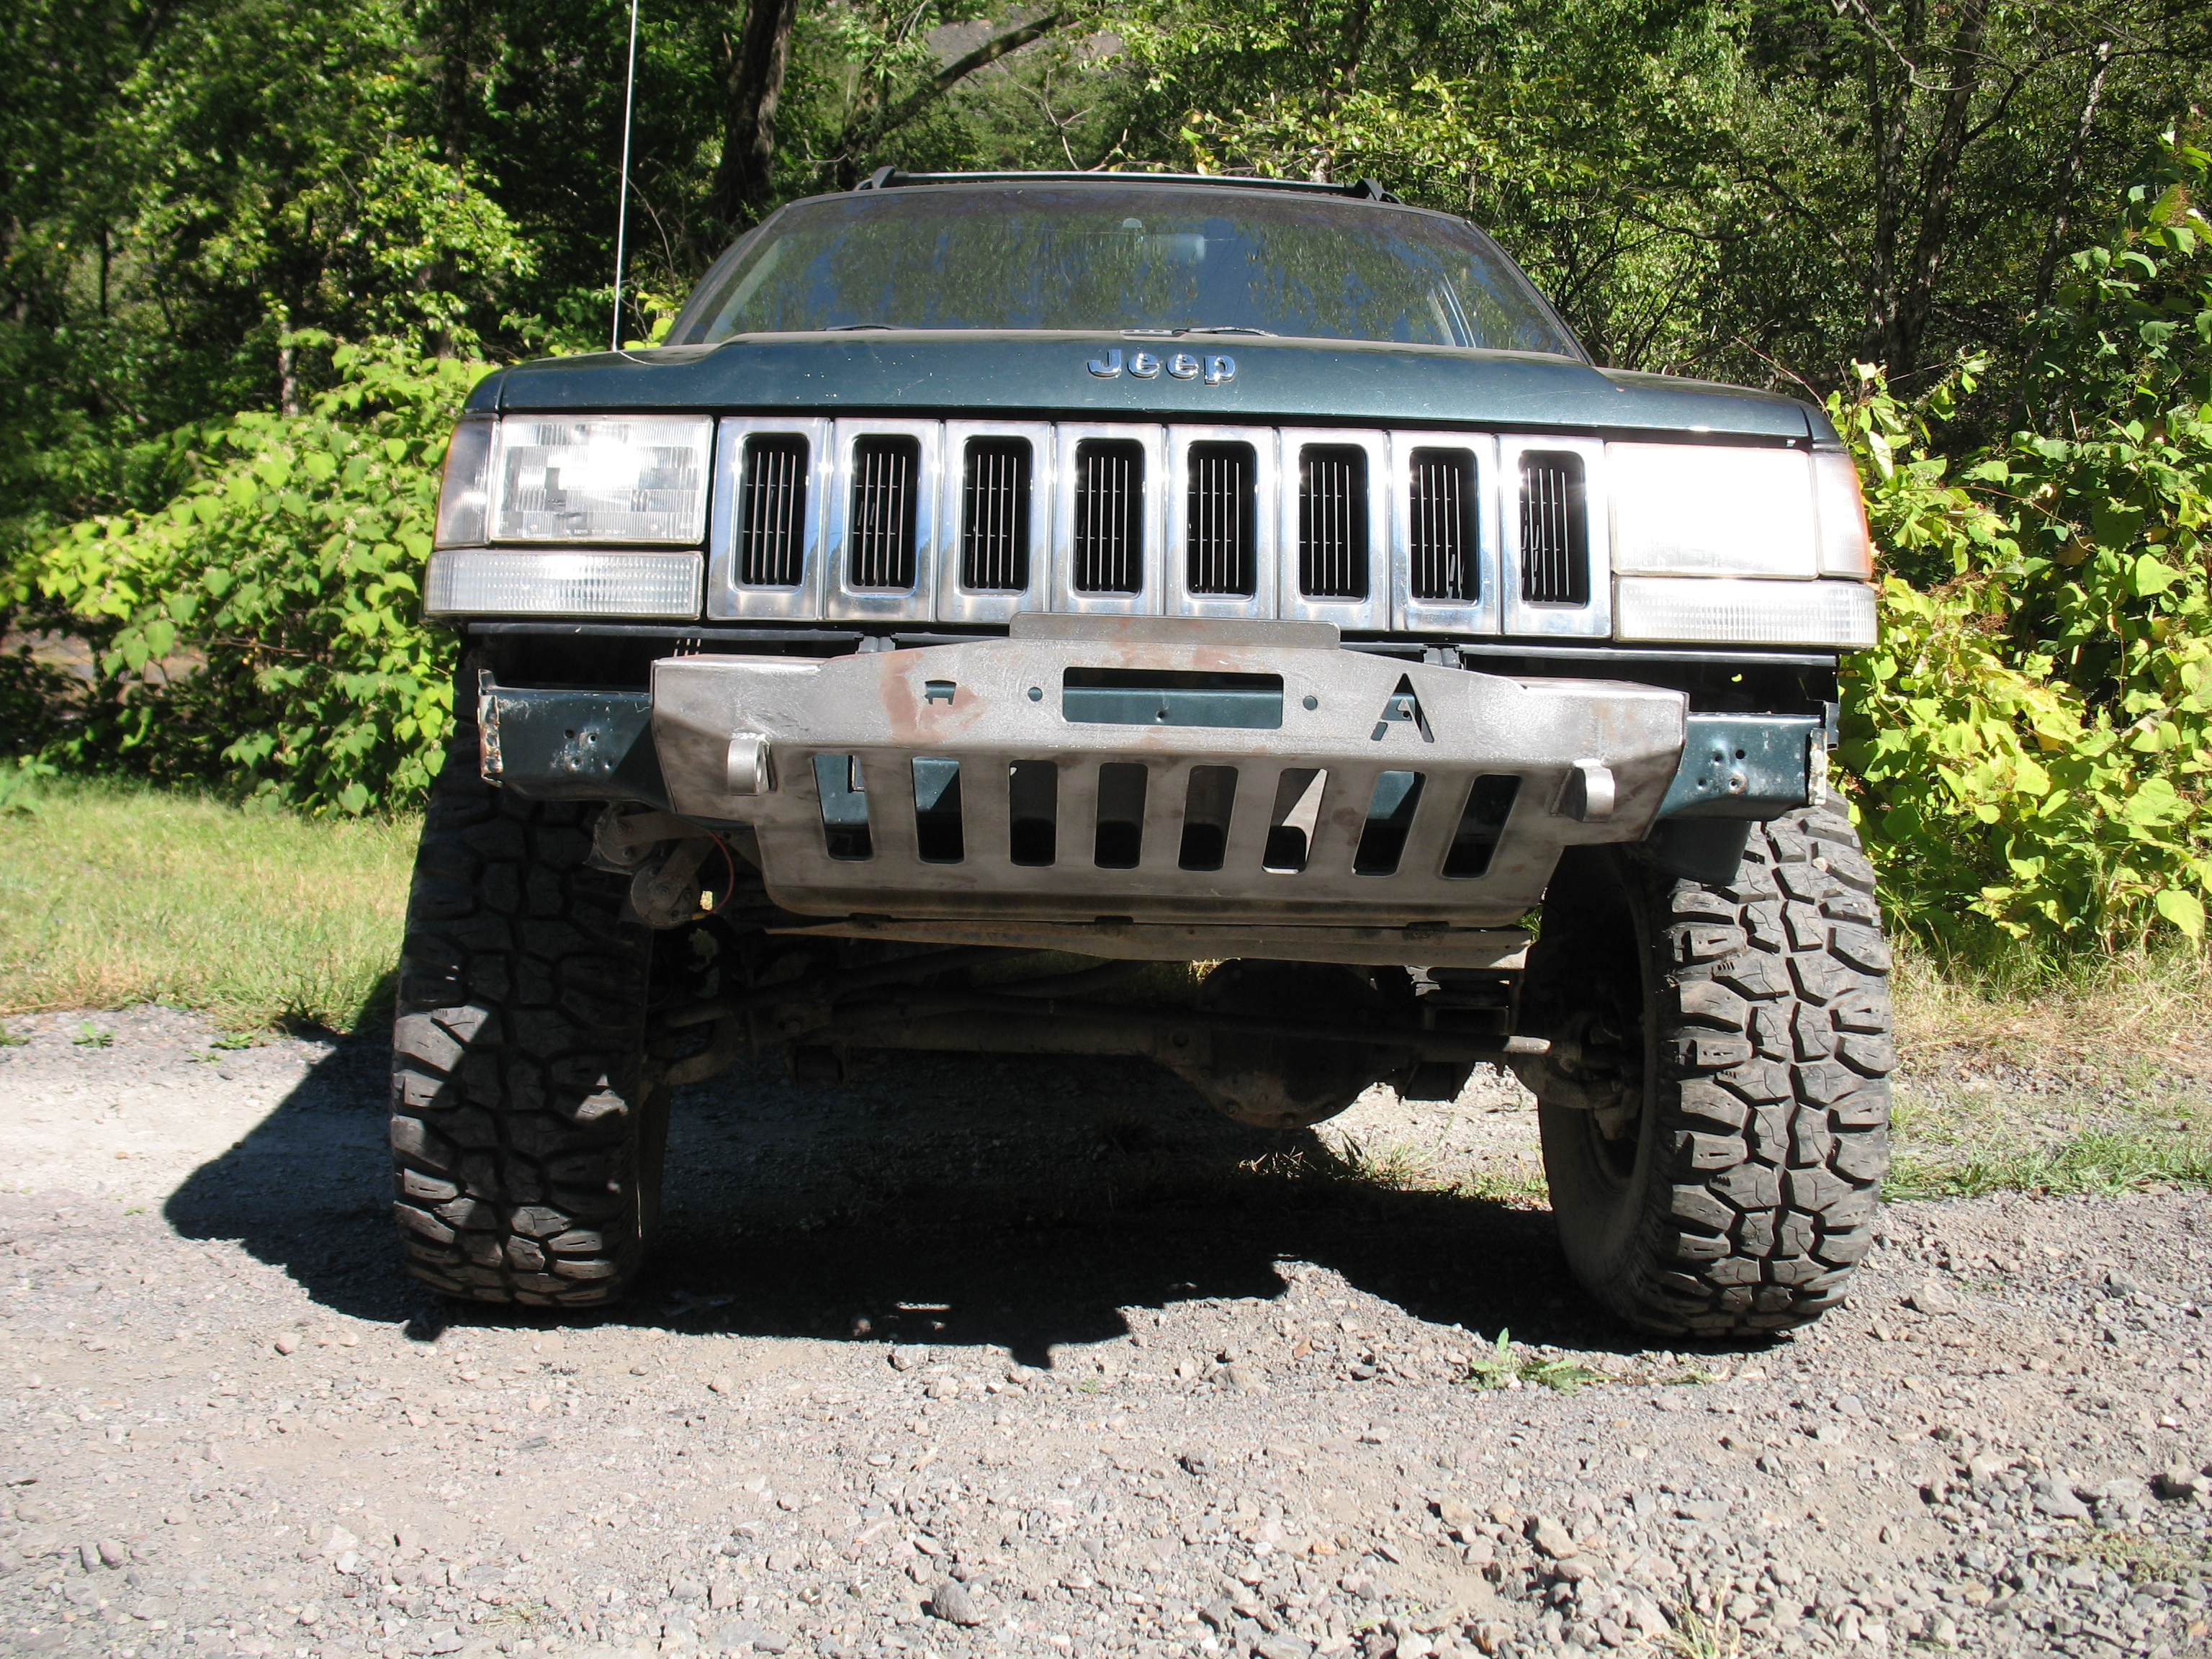 Elite Jeep Grand Cherokee Zj Modular Shorty Plain Front Winch Bumper 93 98 Affordable Offroad